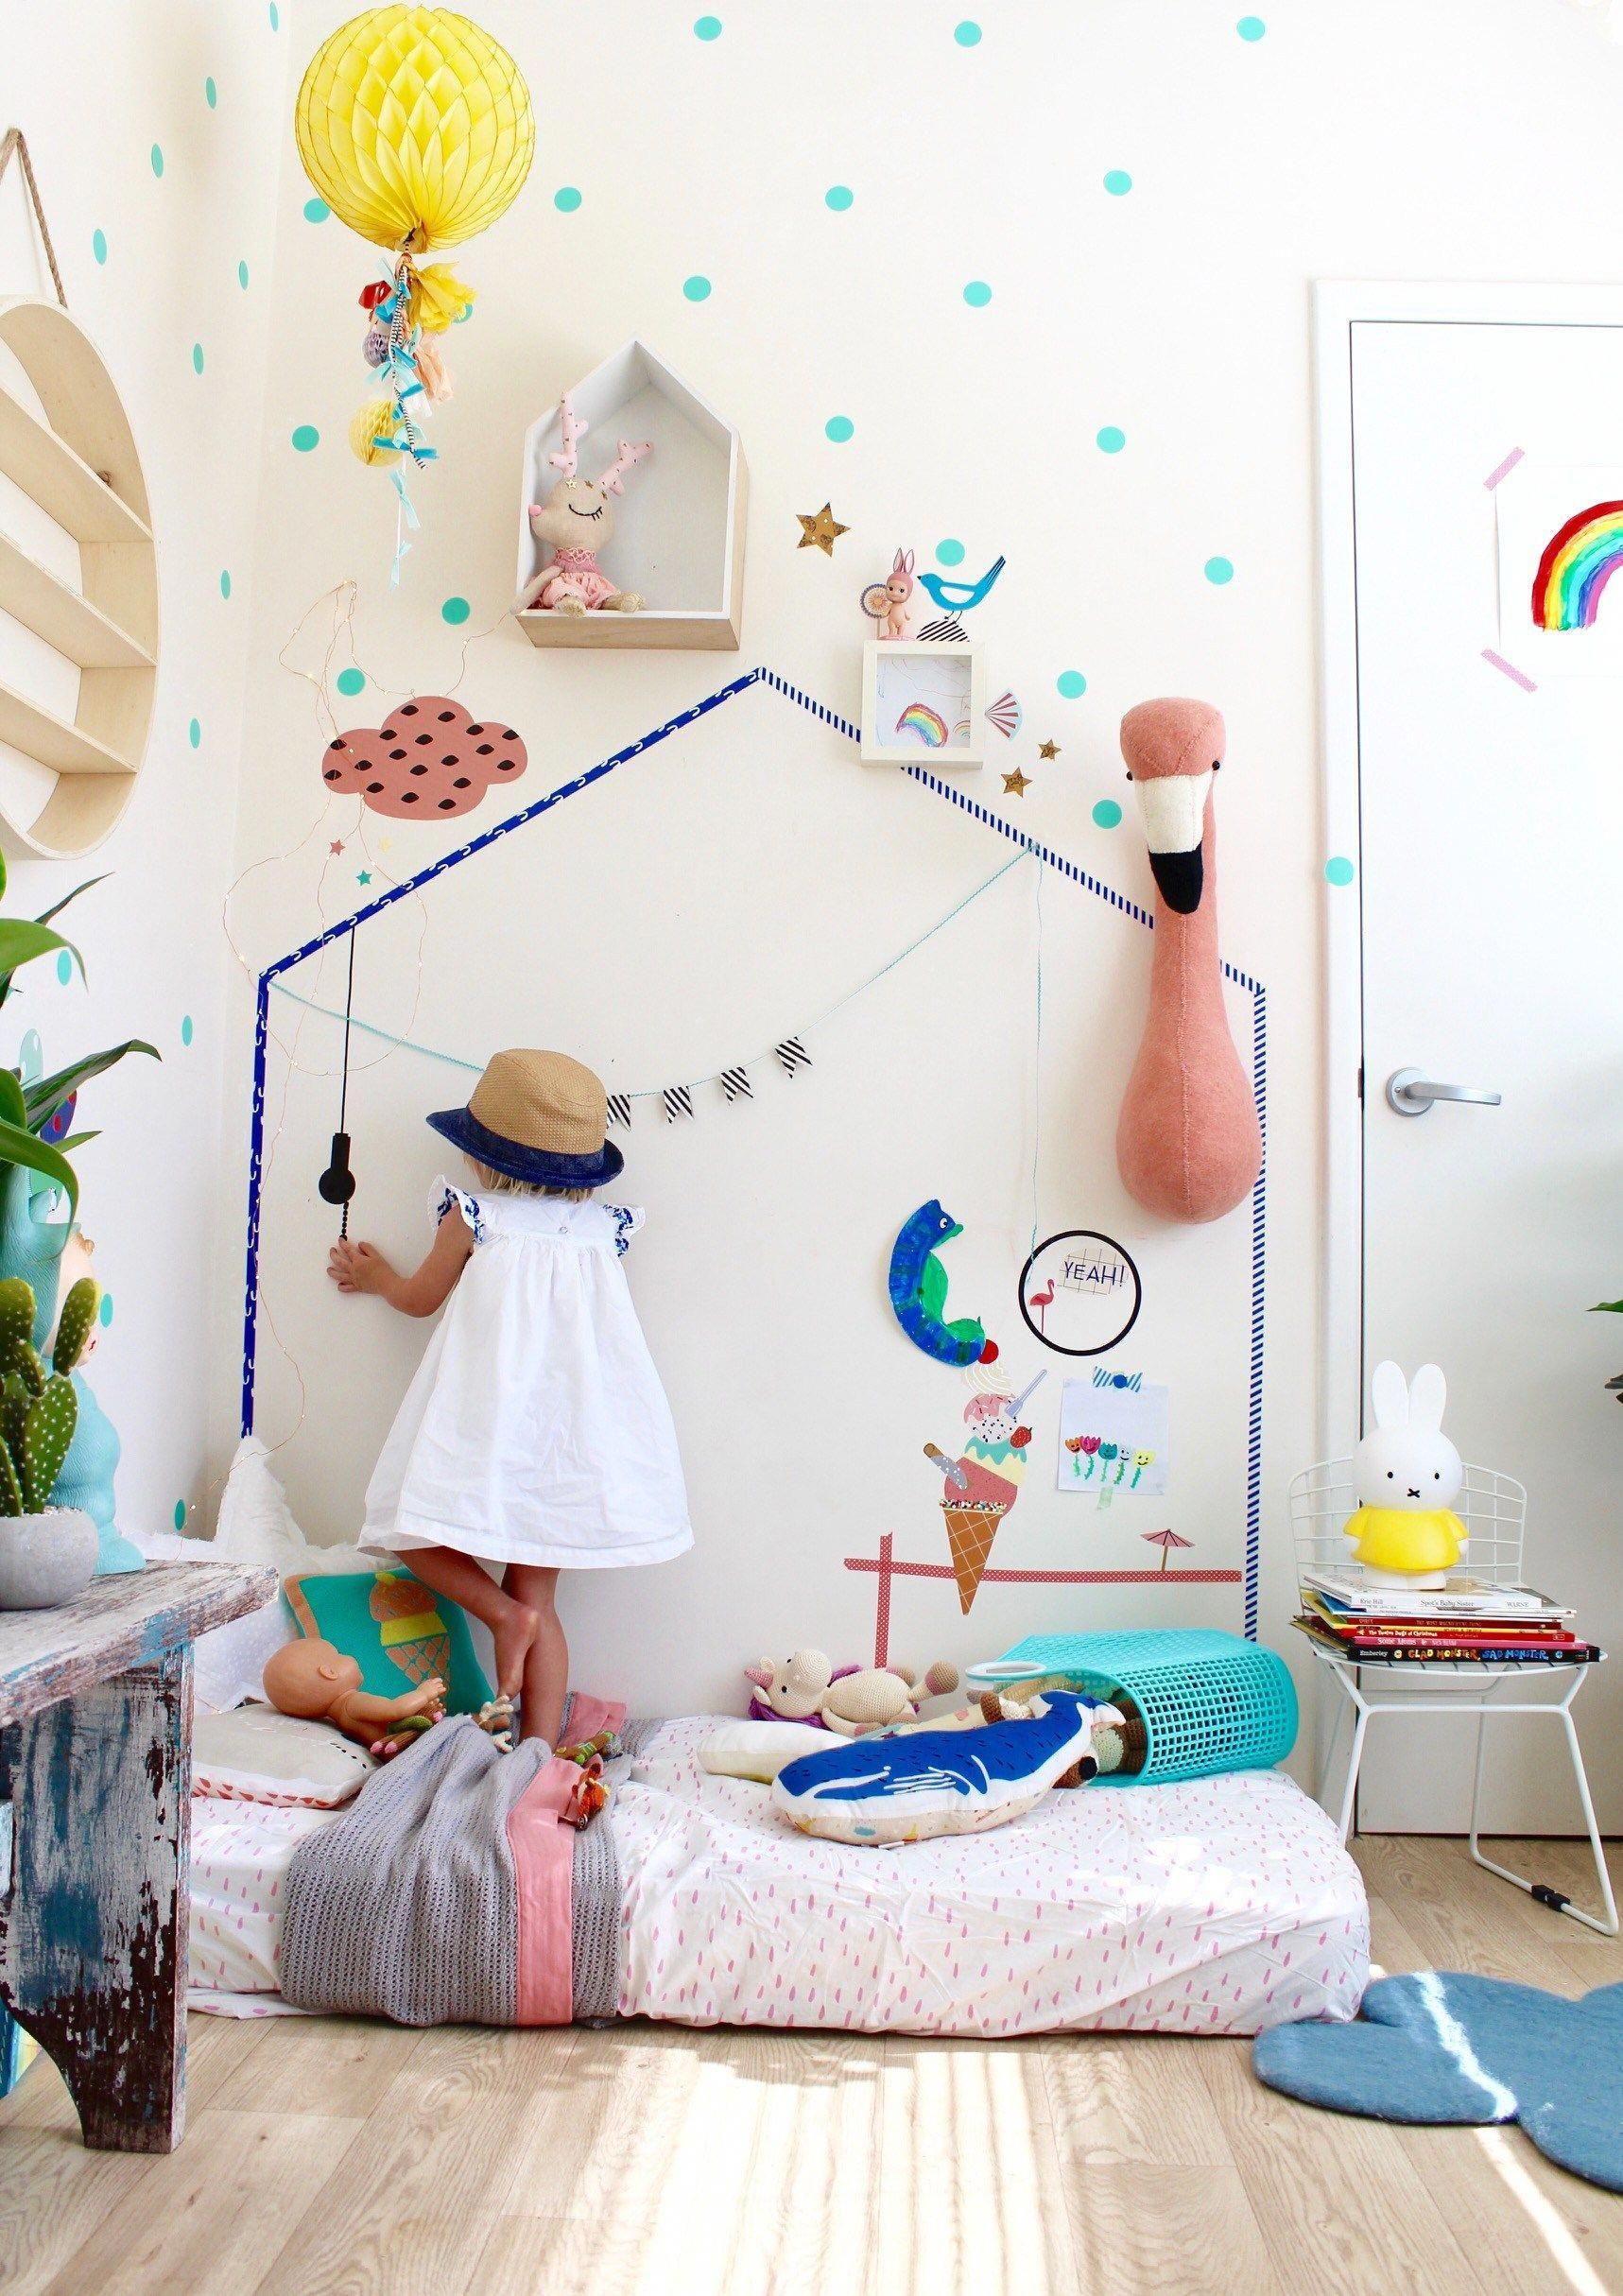 2019 year lifestyle- Bedrooms Childrens decor